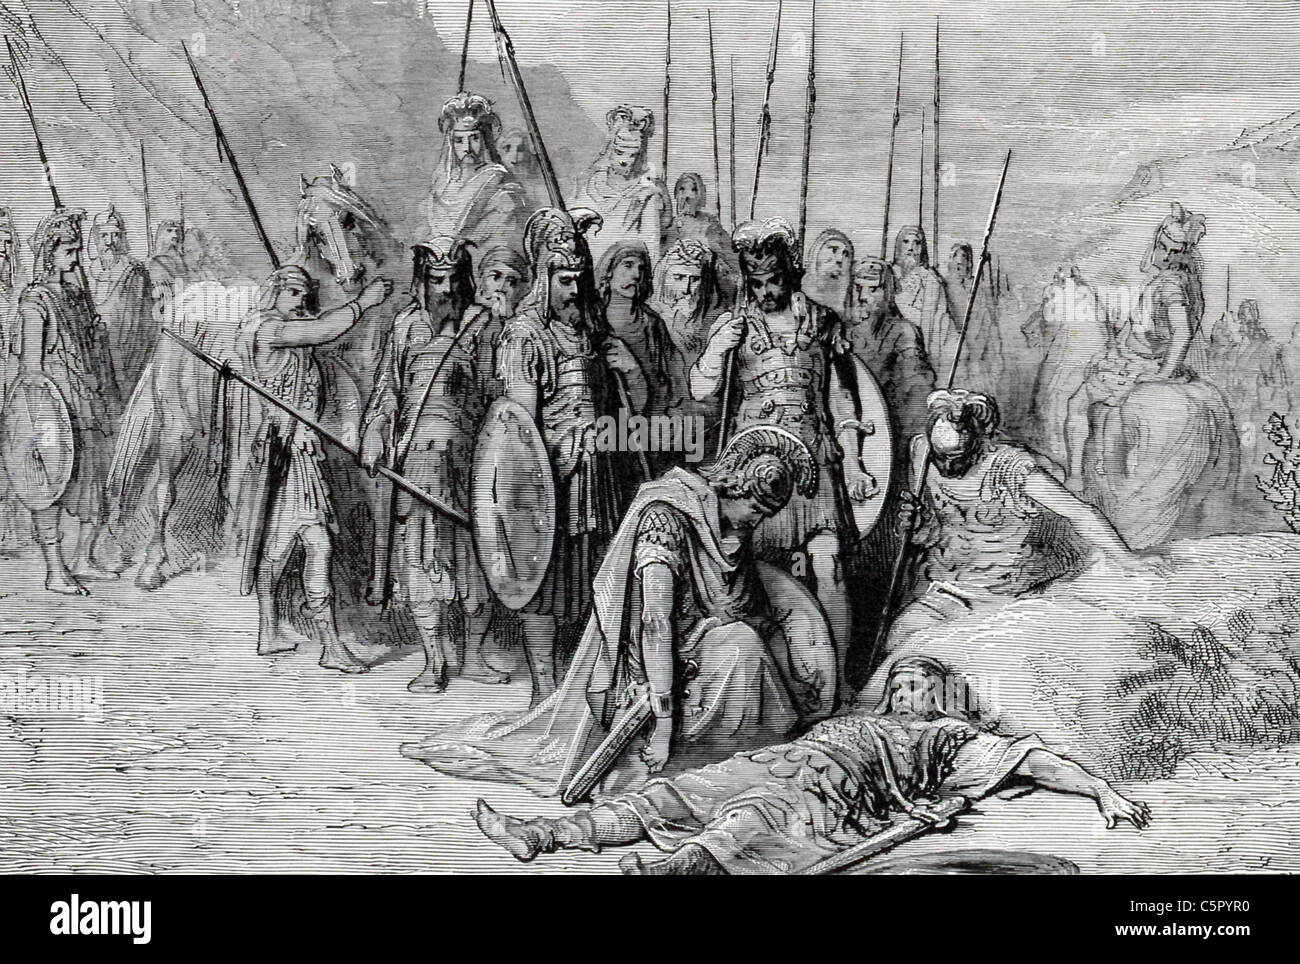 Following battle of Gaugamela, Alexander the Great came upon the dying Darius and ordered a proper burial for him. - Stock Image